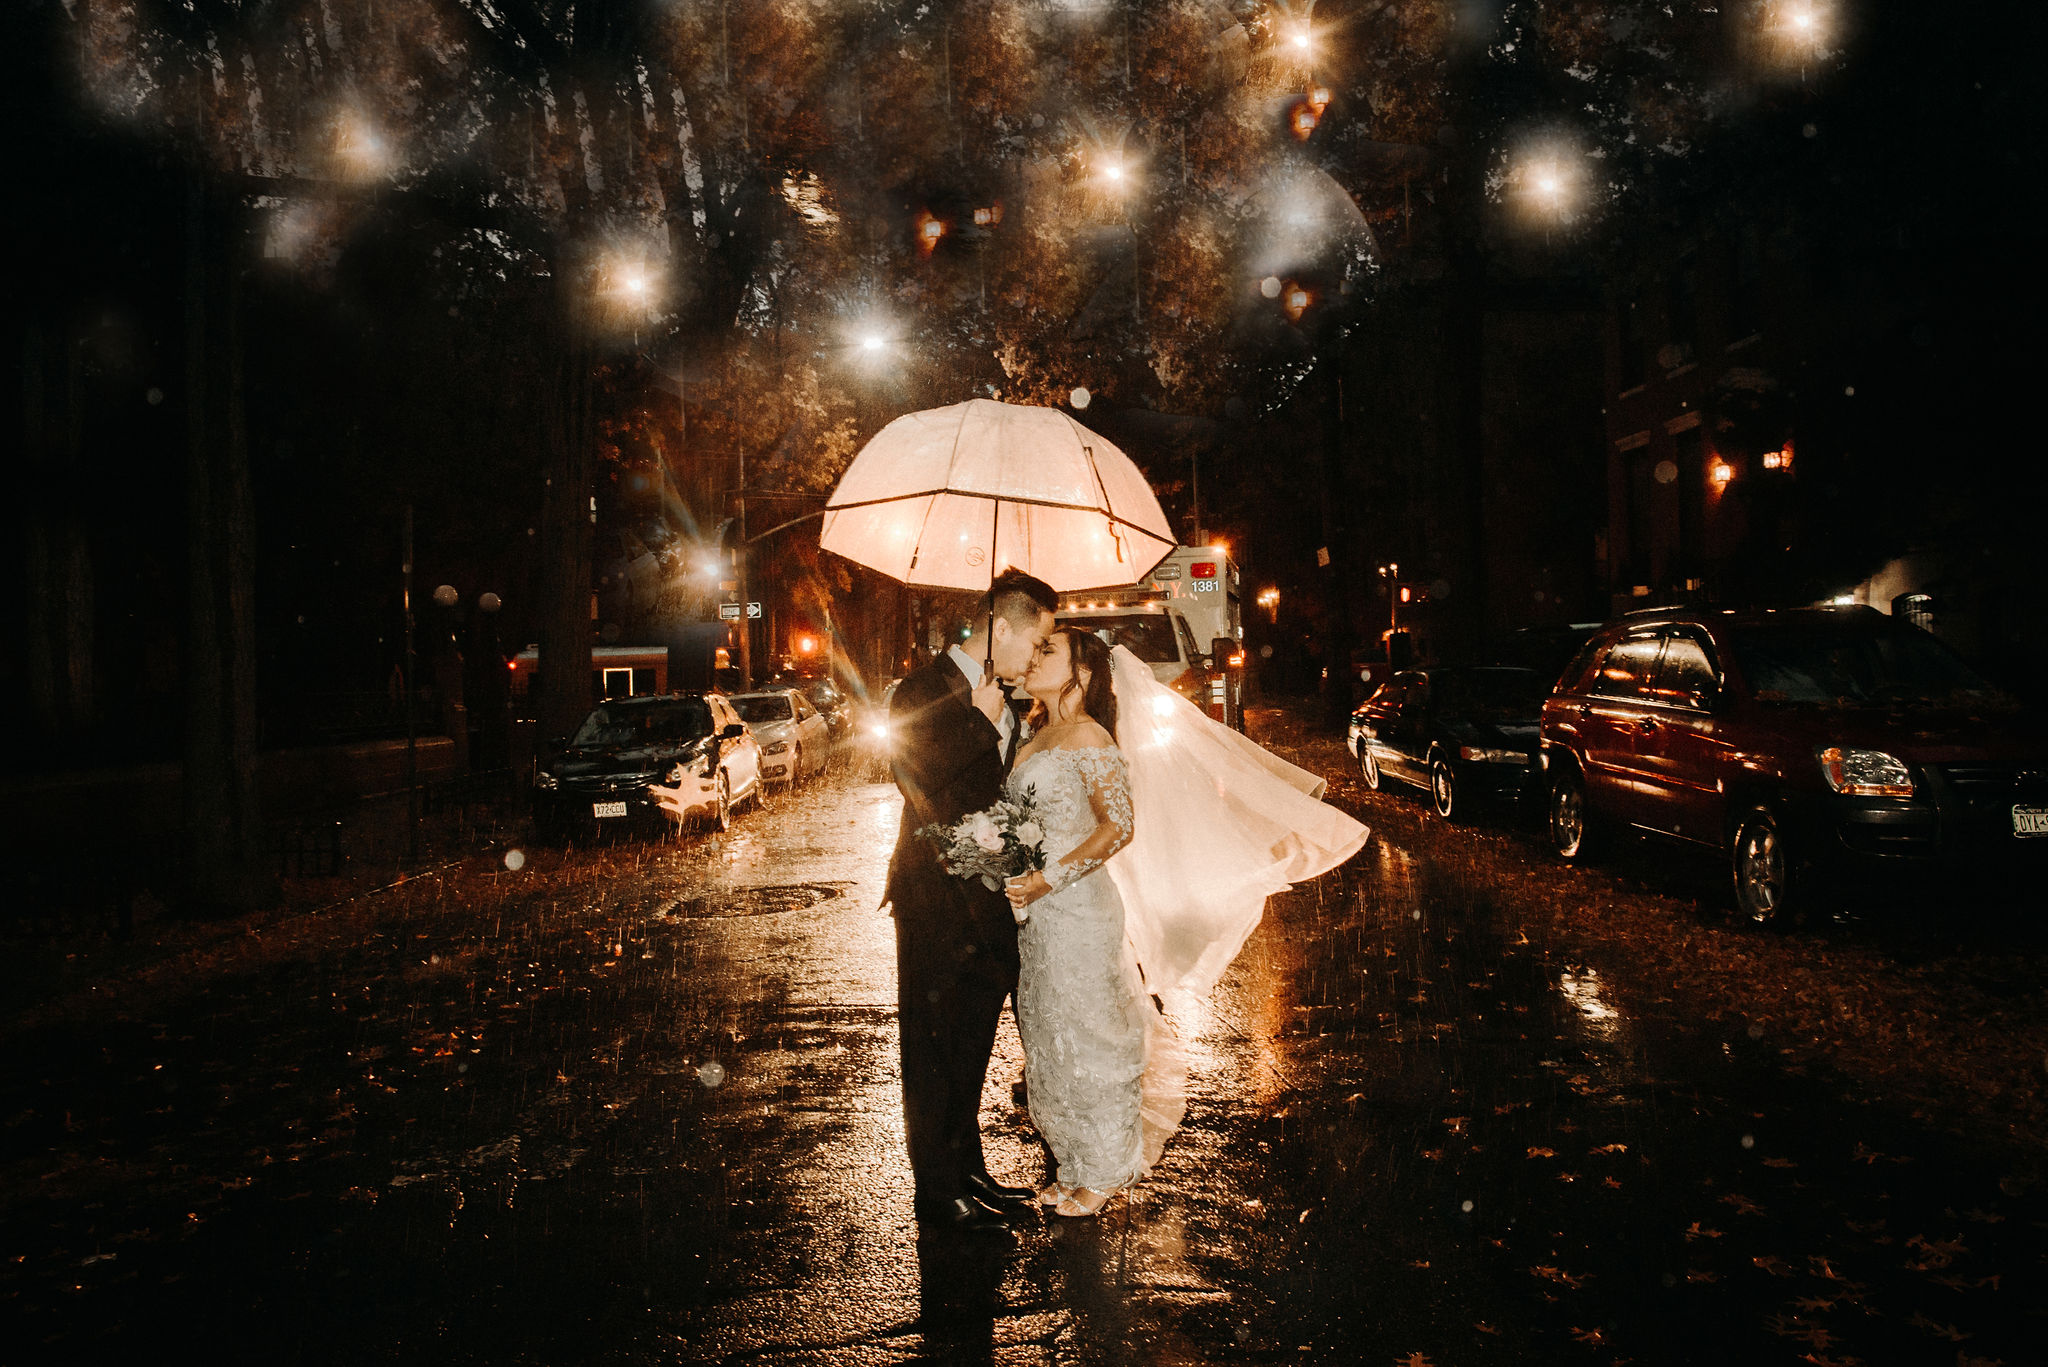 Playing in the rain with the married lovebirds -